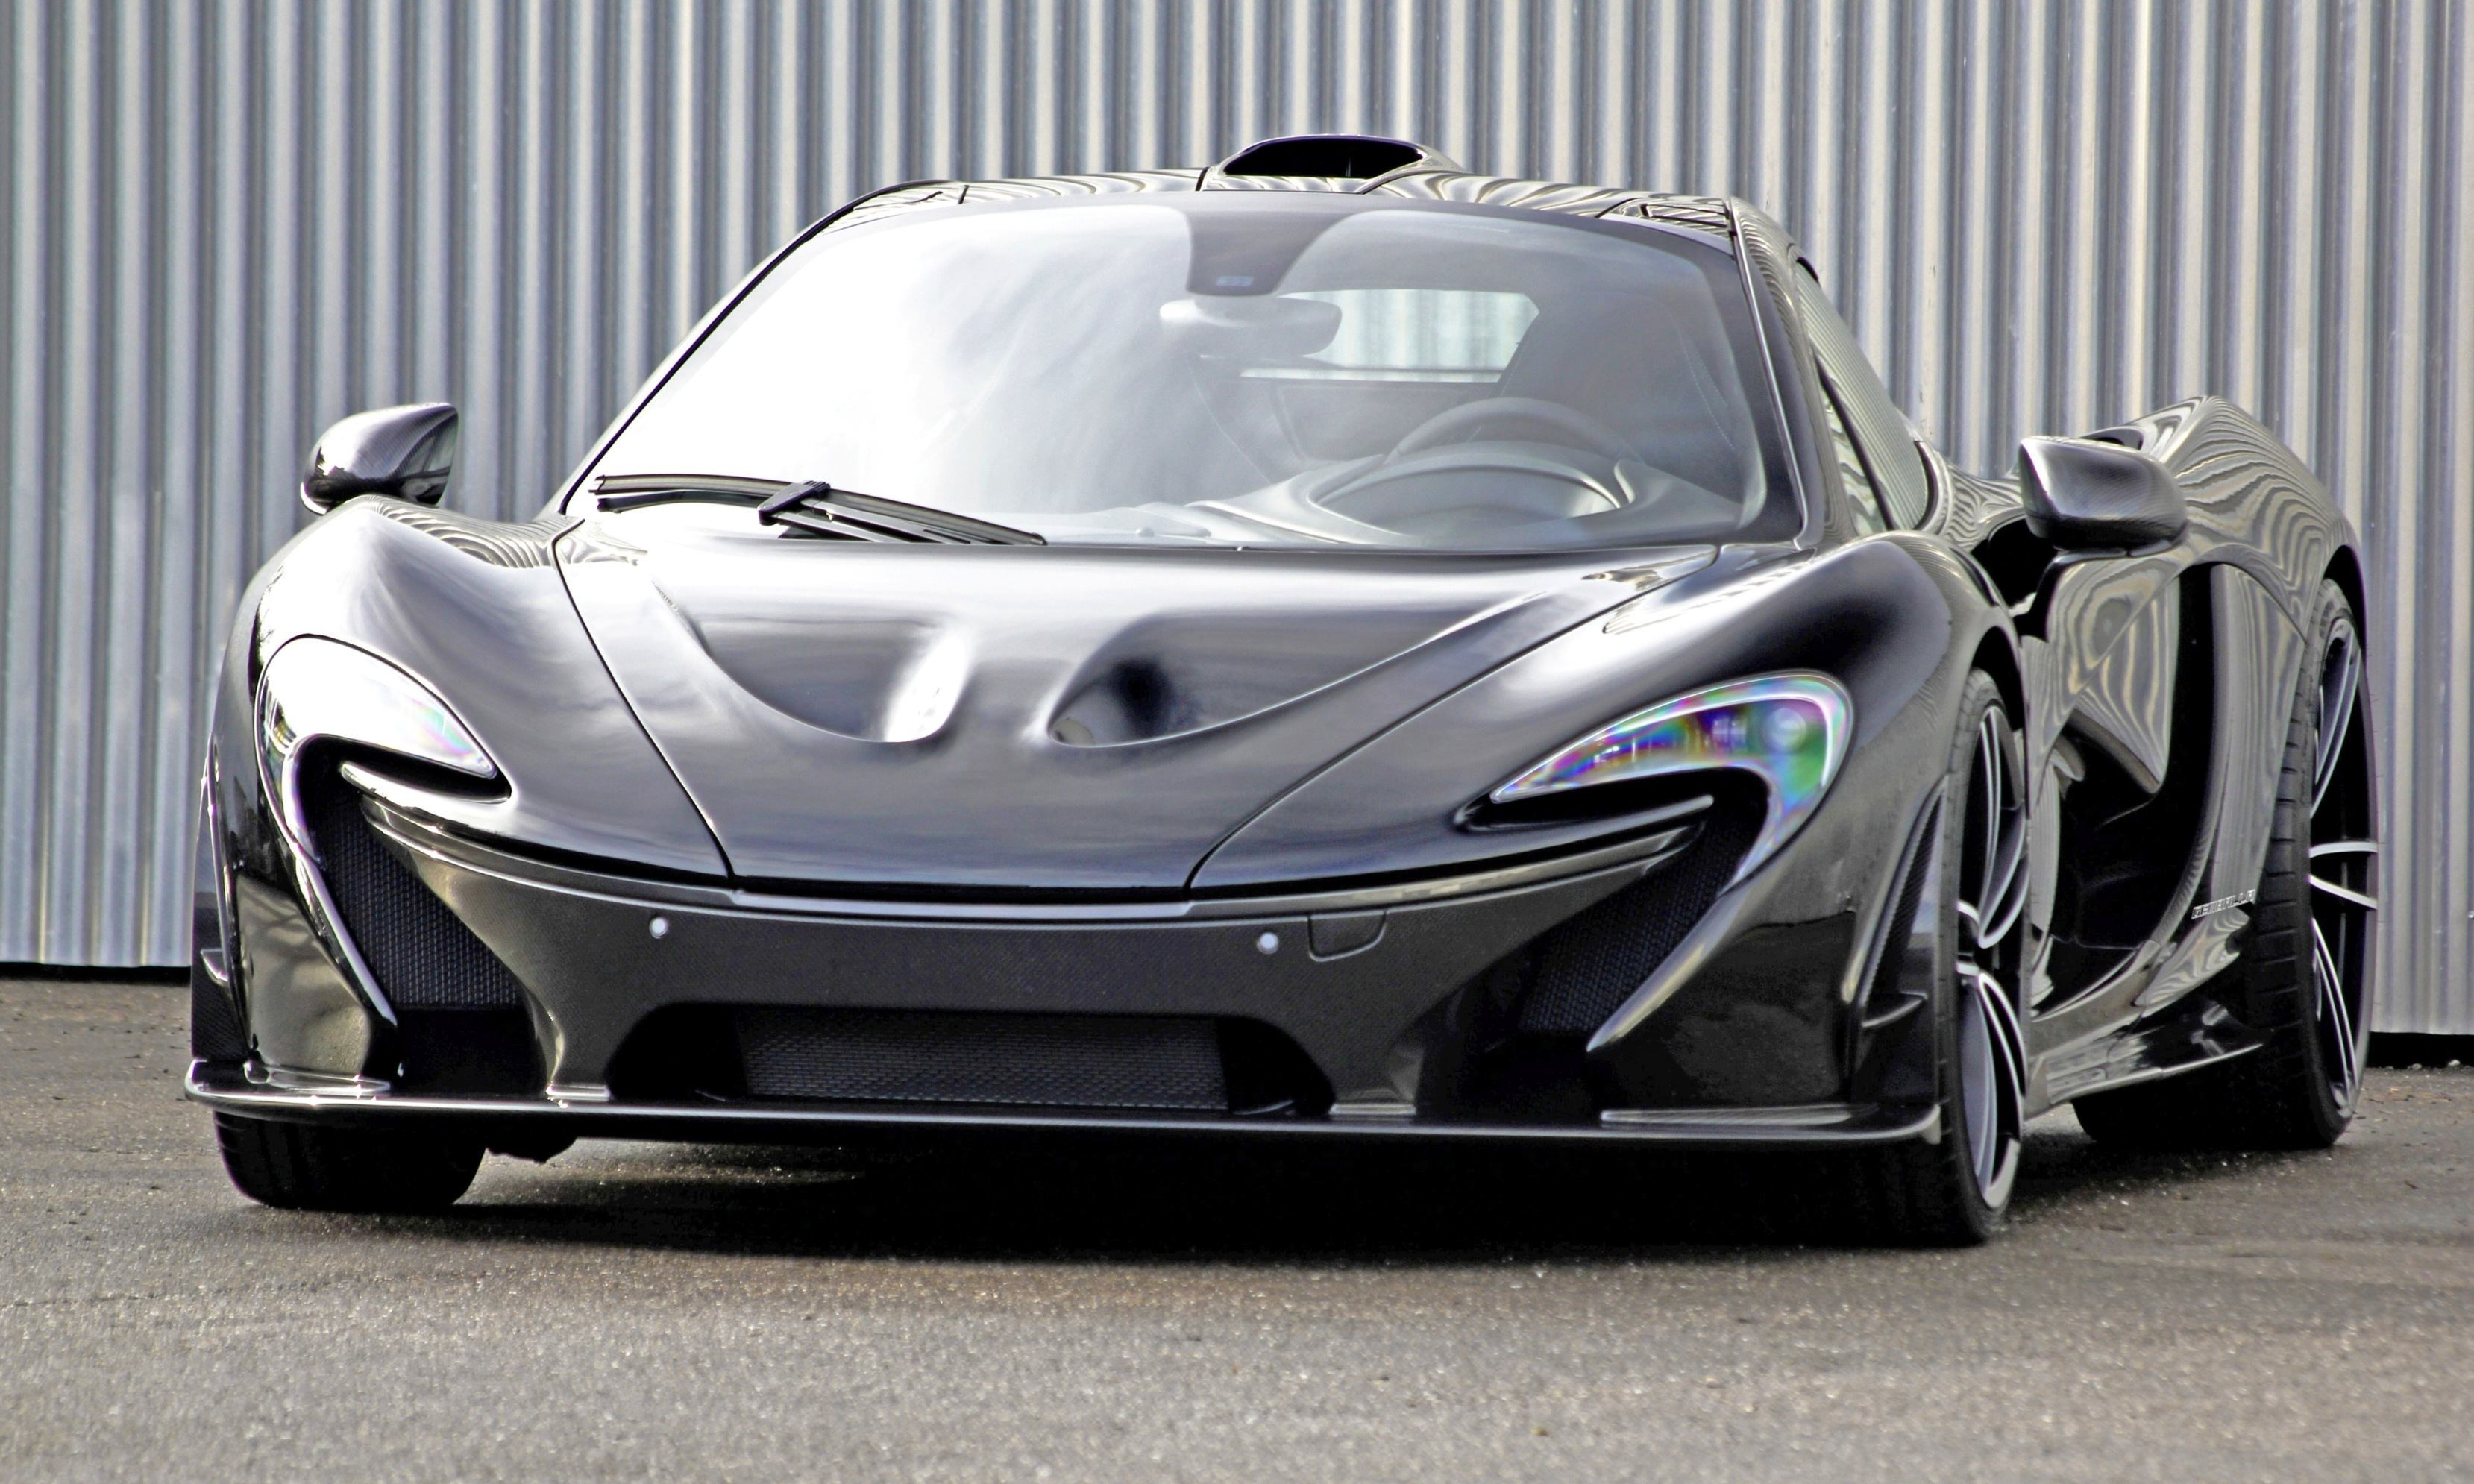 Mclaren On Gemballa Gforged One Wheels Specially Designed For